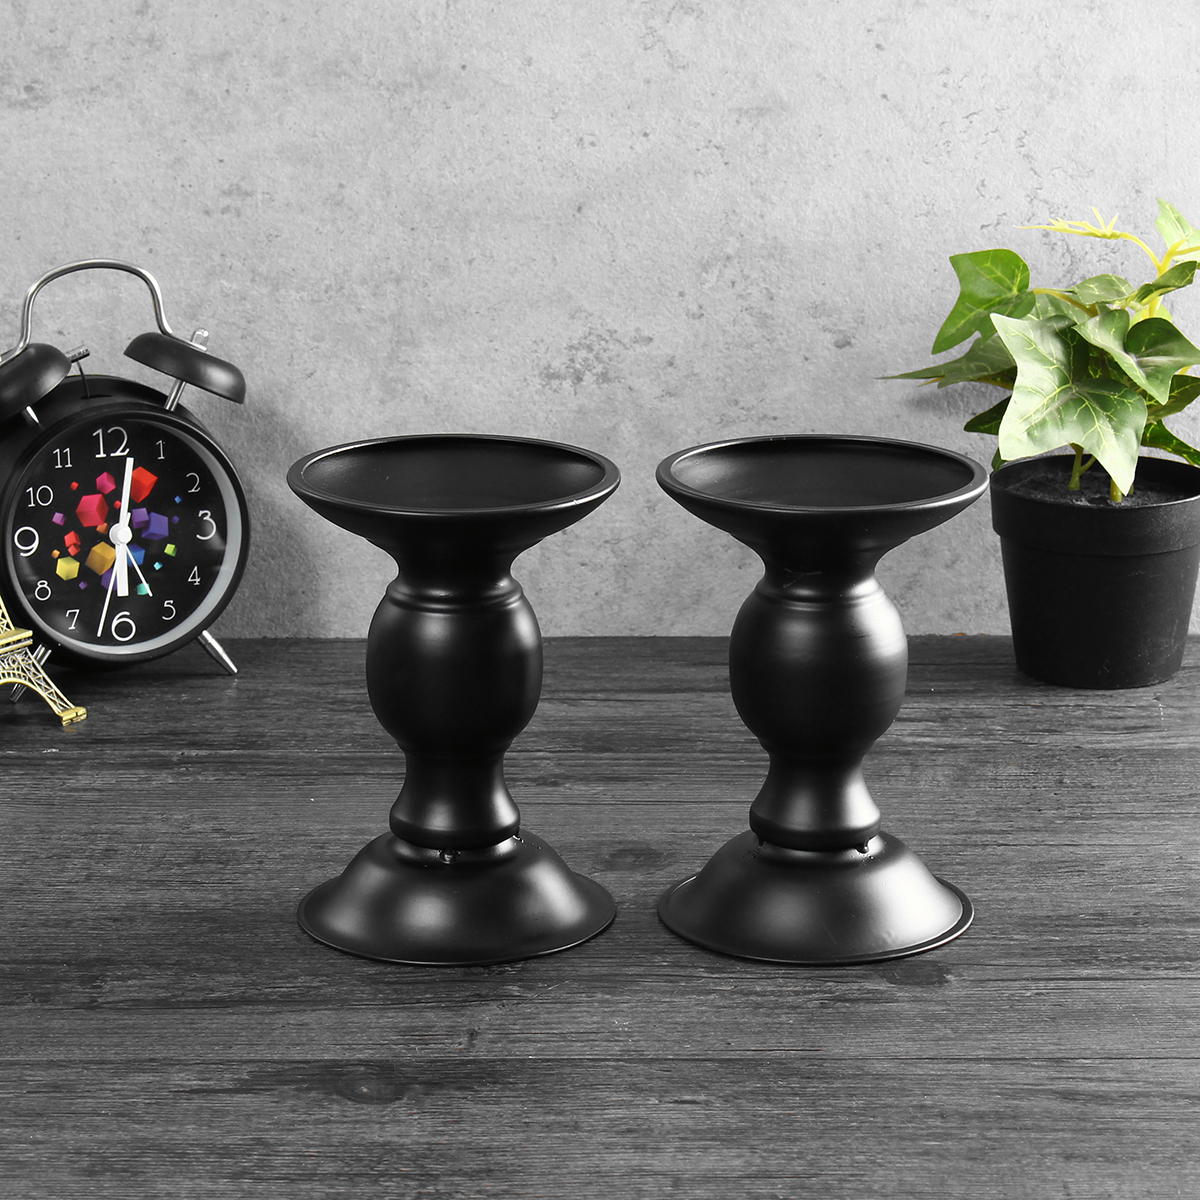 2Pcs Vintage Carved Pillar Candle Holder Candlesticks Stand Wedding Party Decor Black